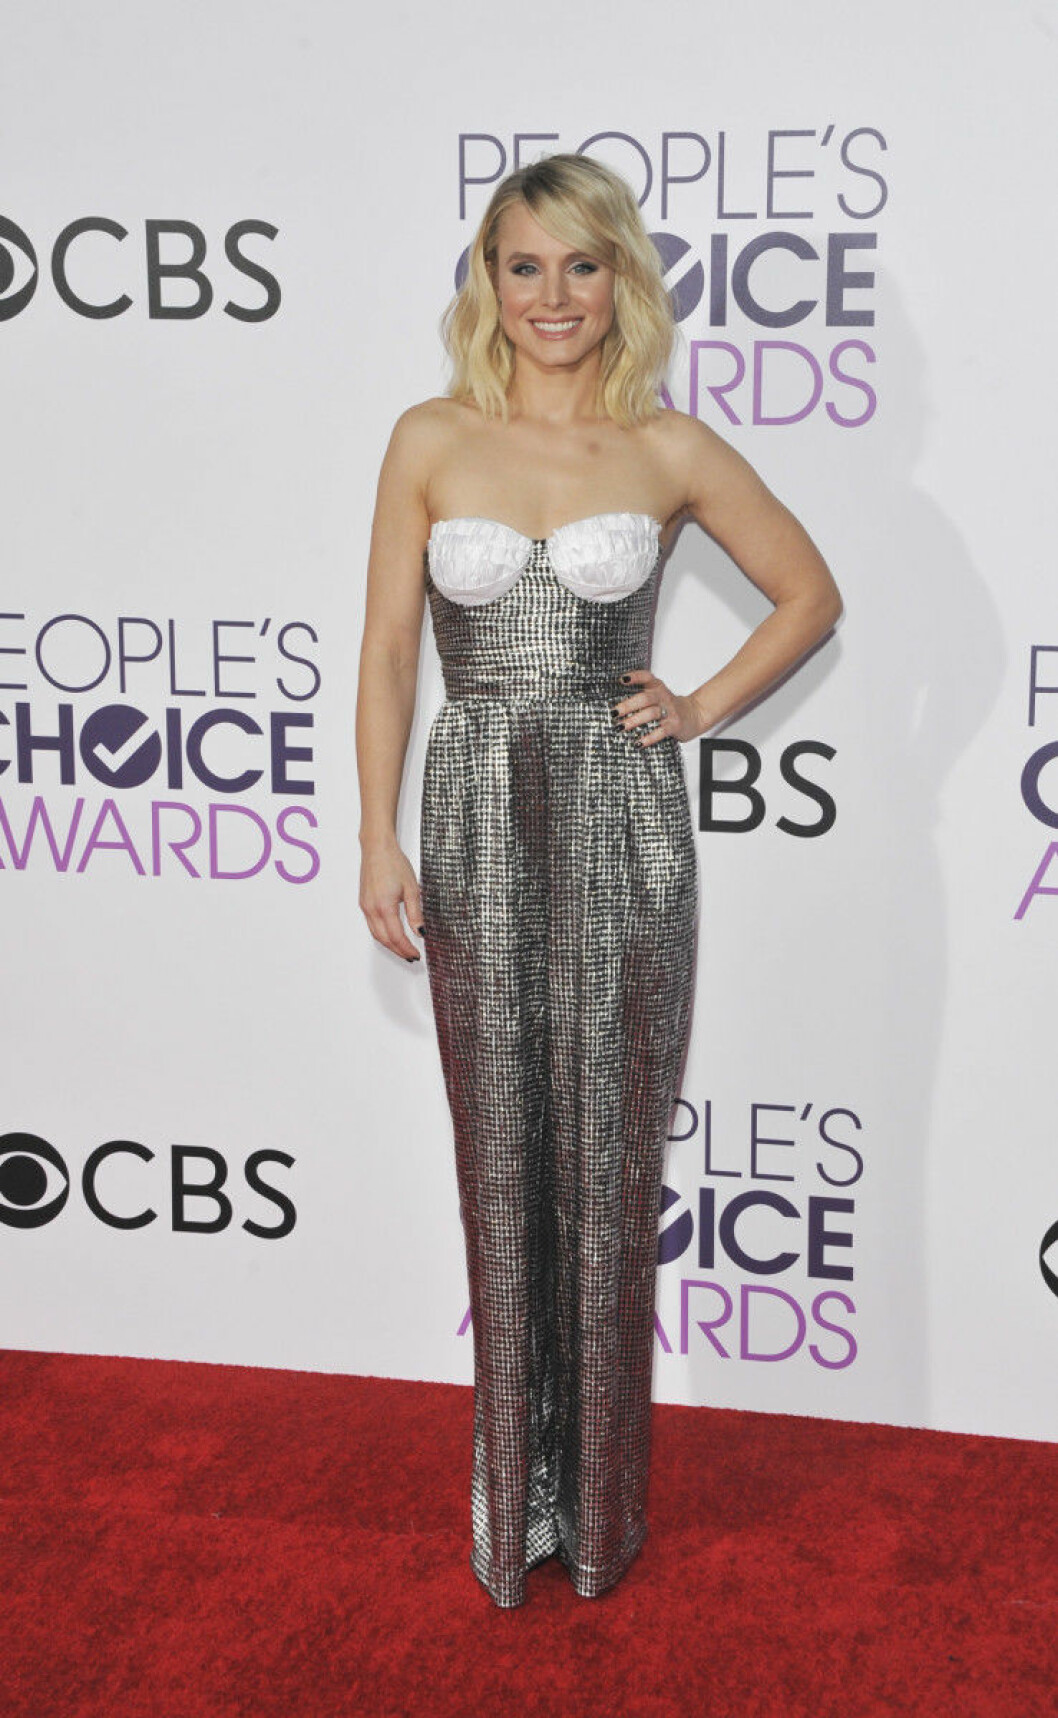 People's Choice Awards 2017 arrivals Featuring: Kristen Bell Where: Los Angeles, California, United States When: 19 Jan 2017 Credit: Apega/WENN.com